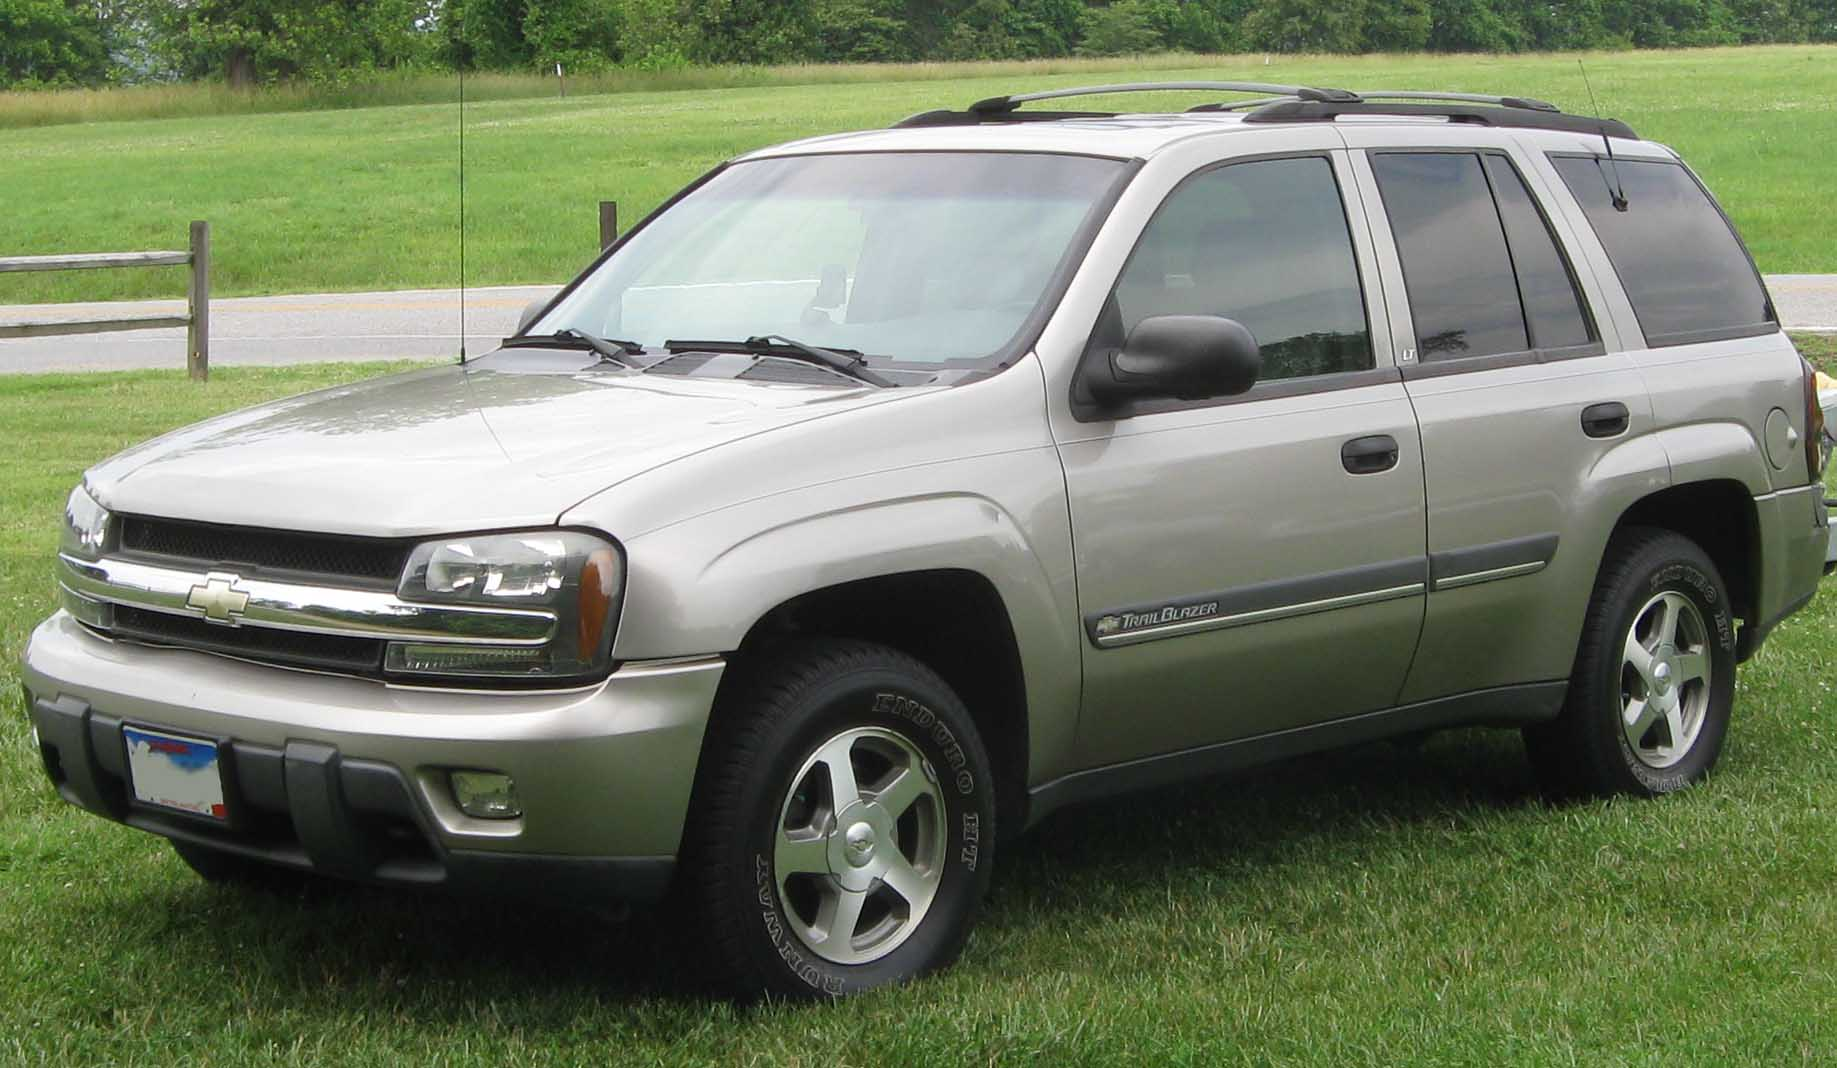 Chevrolet Trailblazer Wikipedia 2003 Chevy C4500 Wiring Diagram